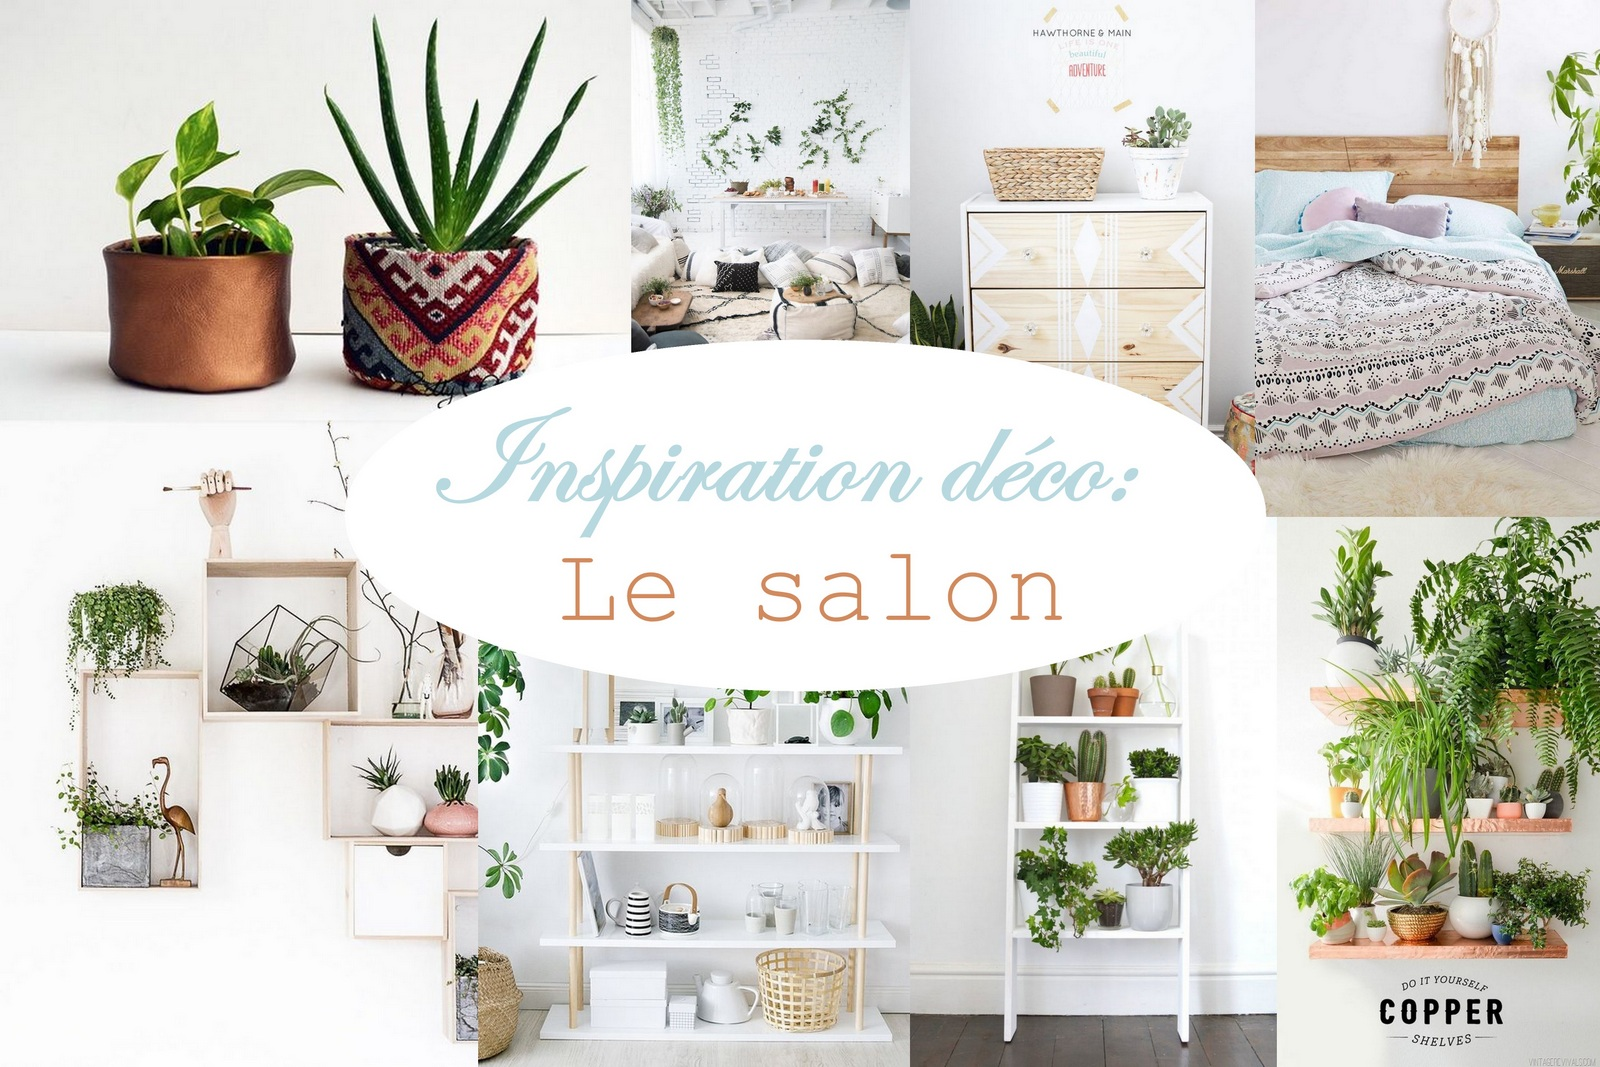 Inspiration d co le salon mon carnet d co diy organisation id es rangem - Inspiration deco salon ...